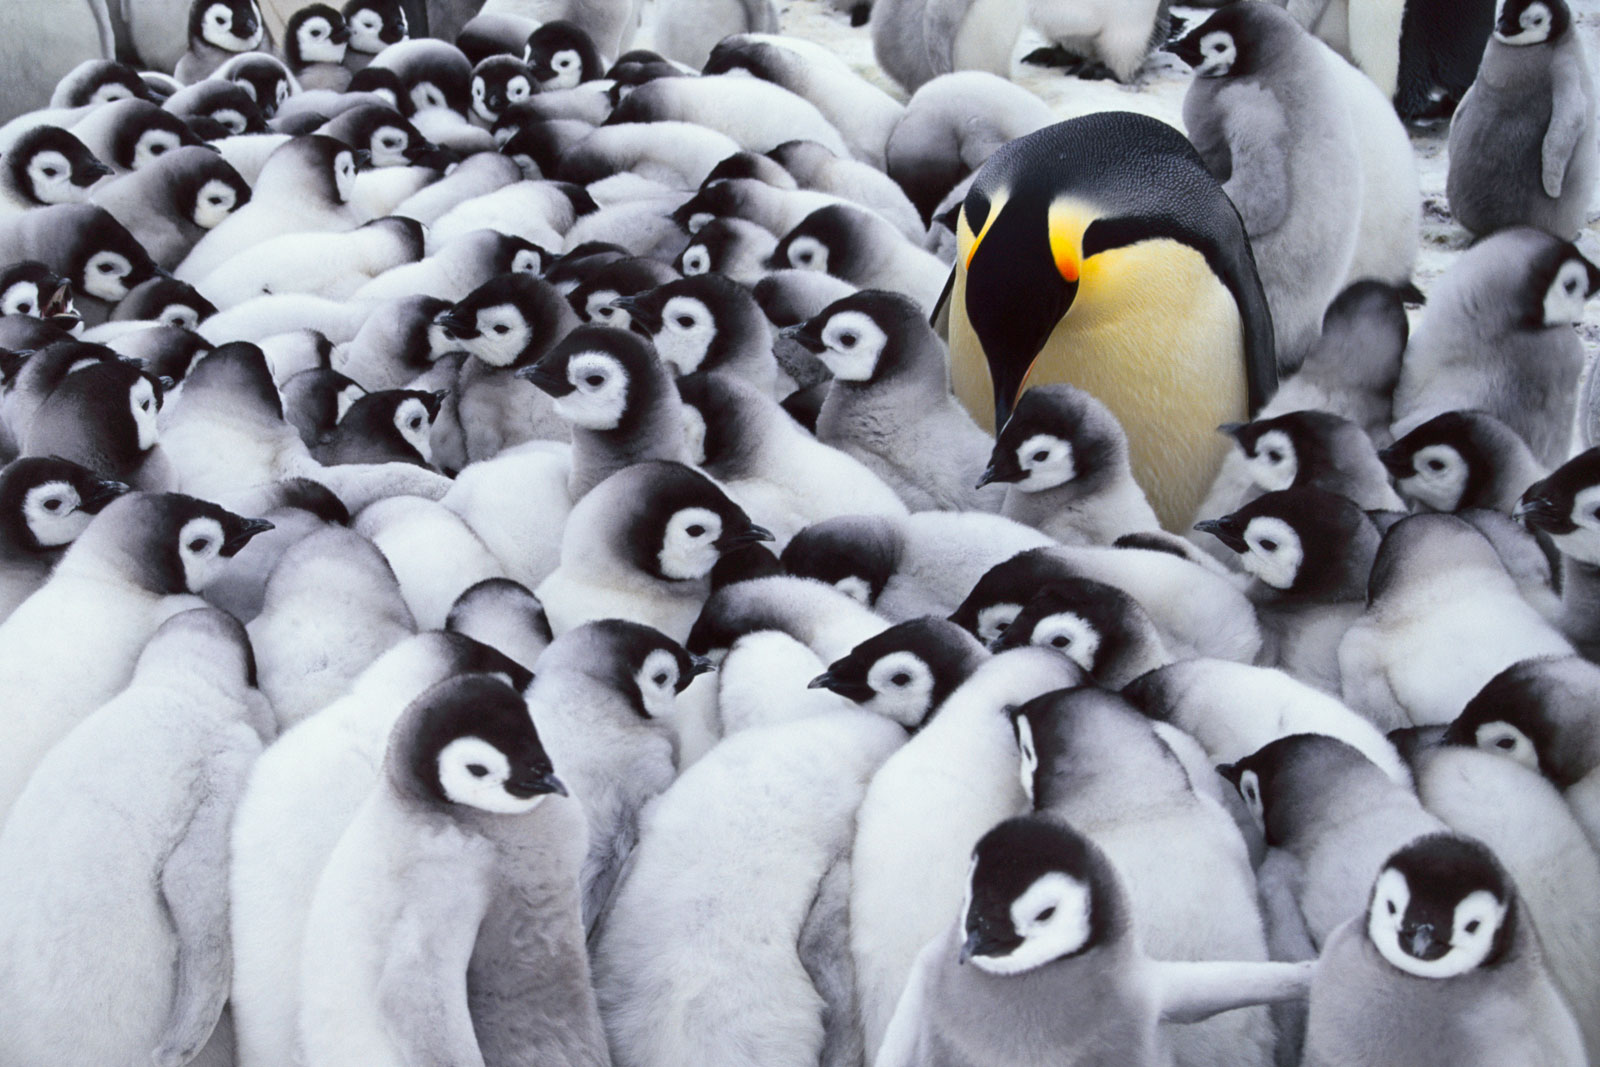 Emperor penguin parent with chicks, Antarctica